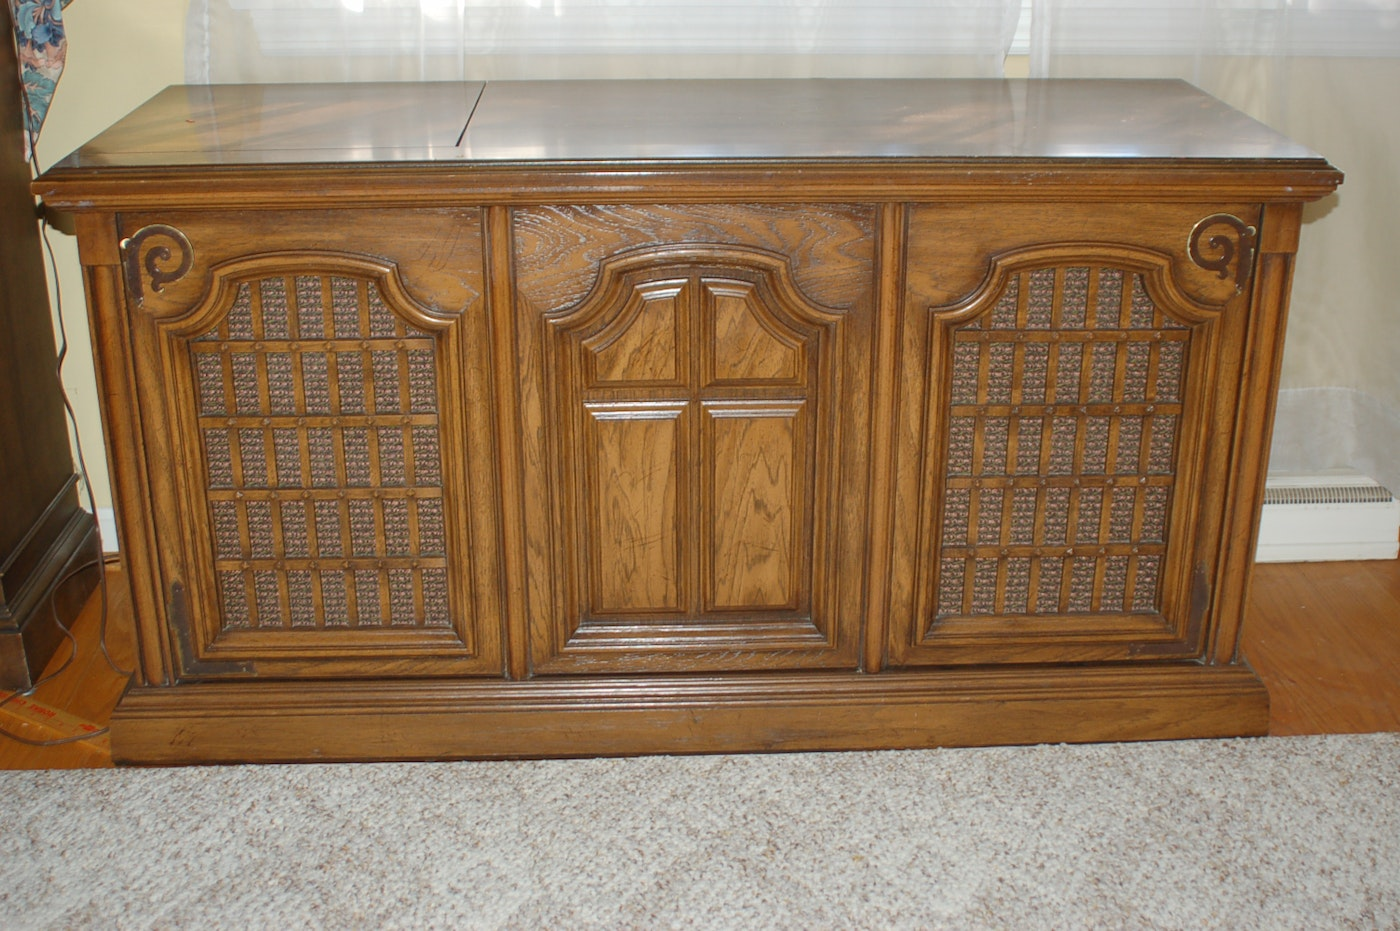 Magnavox Vintage Console Stereo Ebth